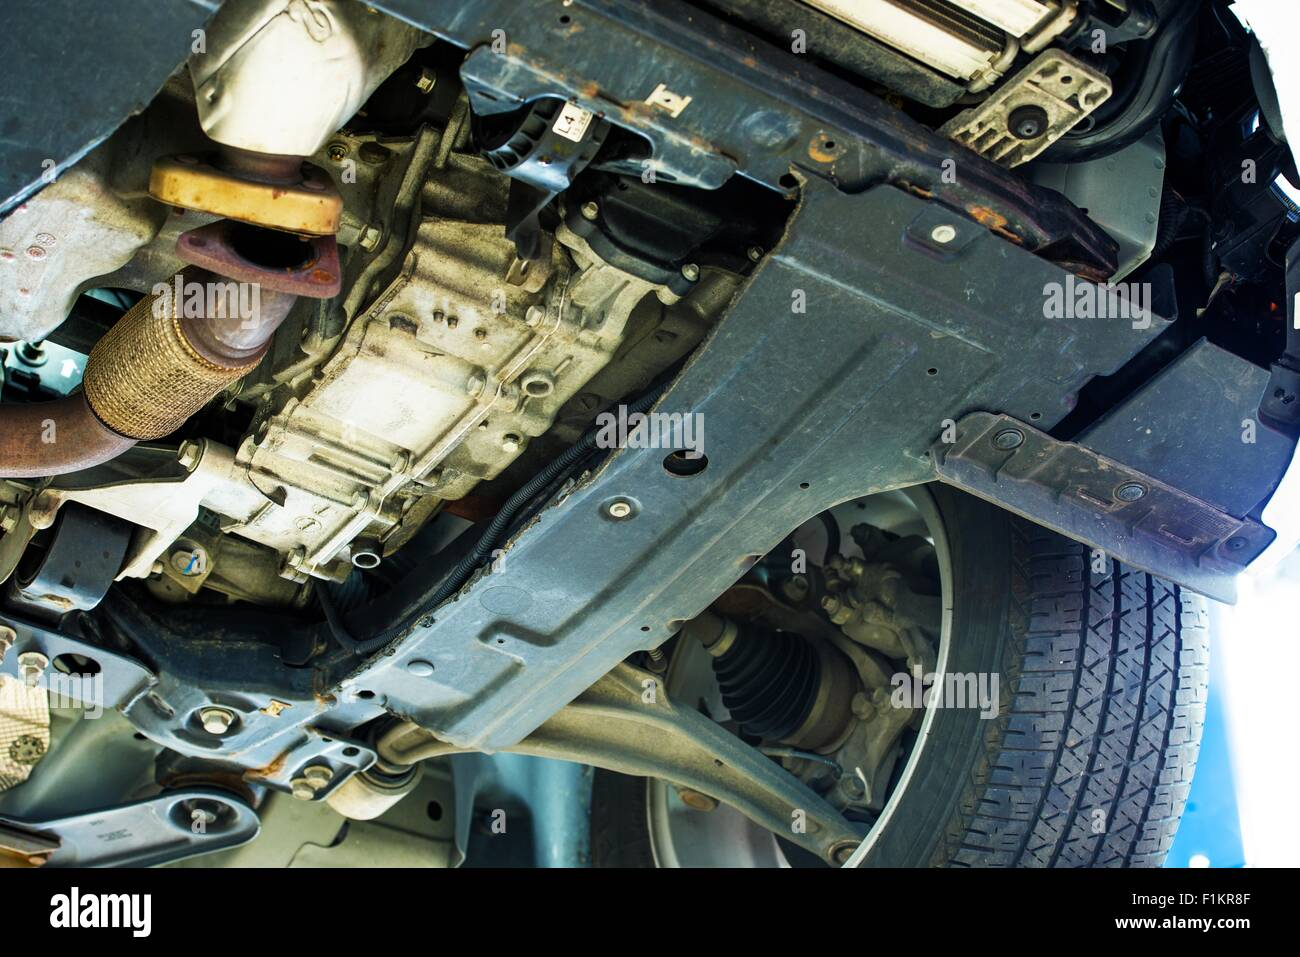 Rusty Car Undercarriage Closeup Photo. Car in Auto Service. Lifted Broken Car. - Stock Image